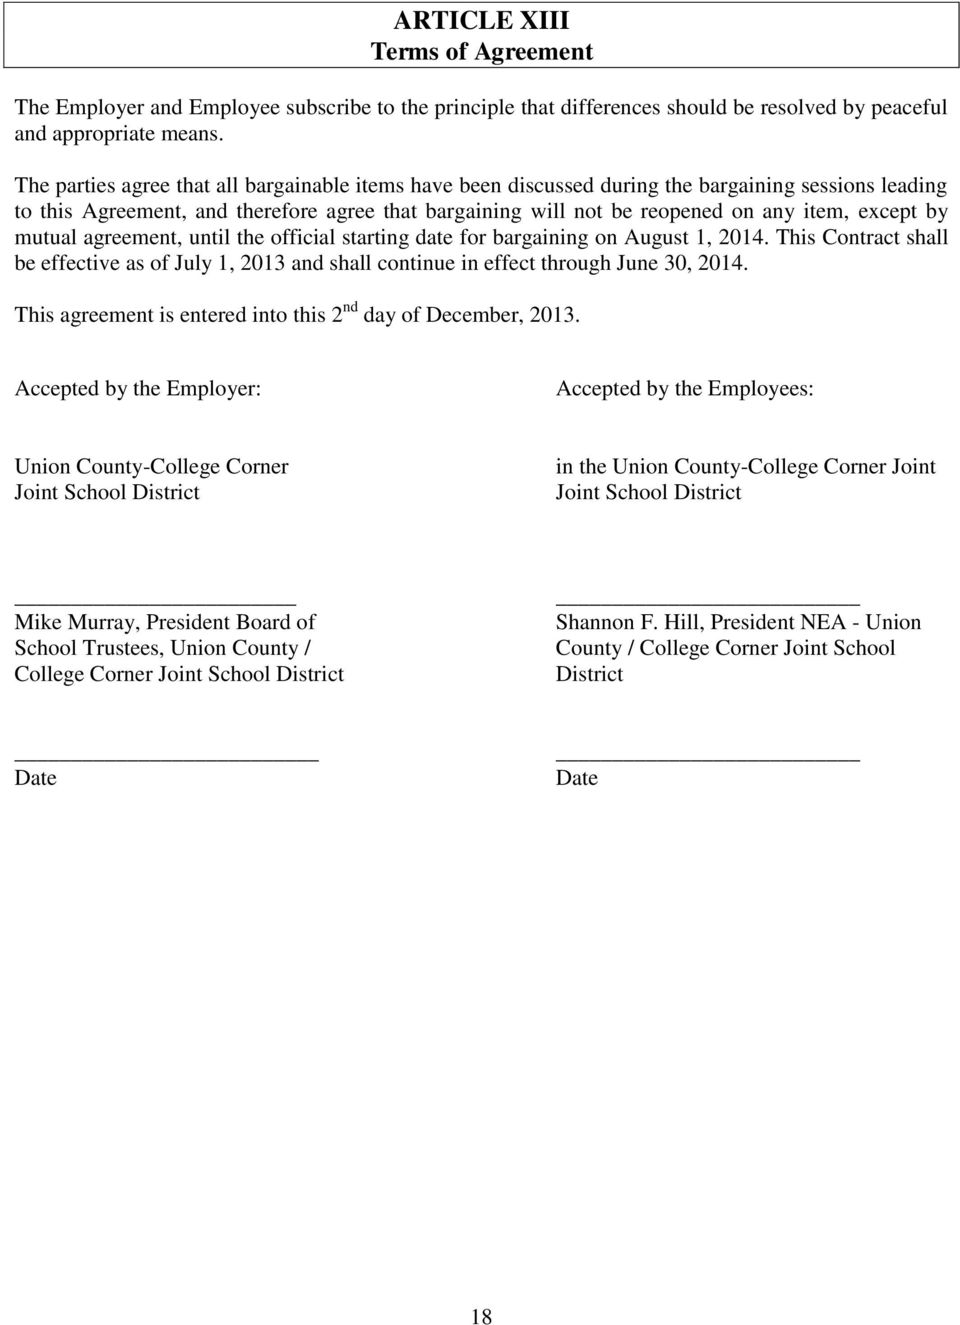 by mutual agreement, until the official starting date for bargaining on August 1, 2014. This Contract shall be effective as of July 1, 2013 and shall continue in effect through June 30, 2014.